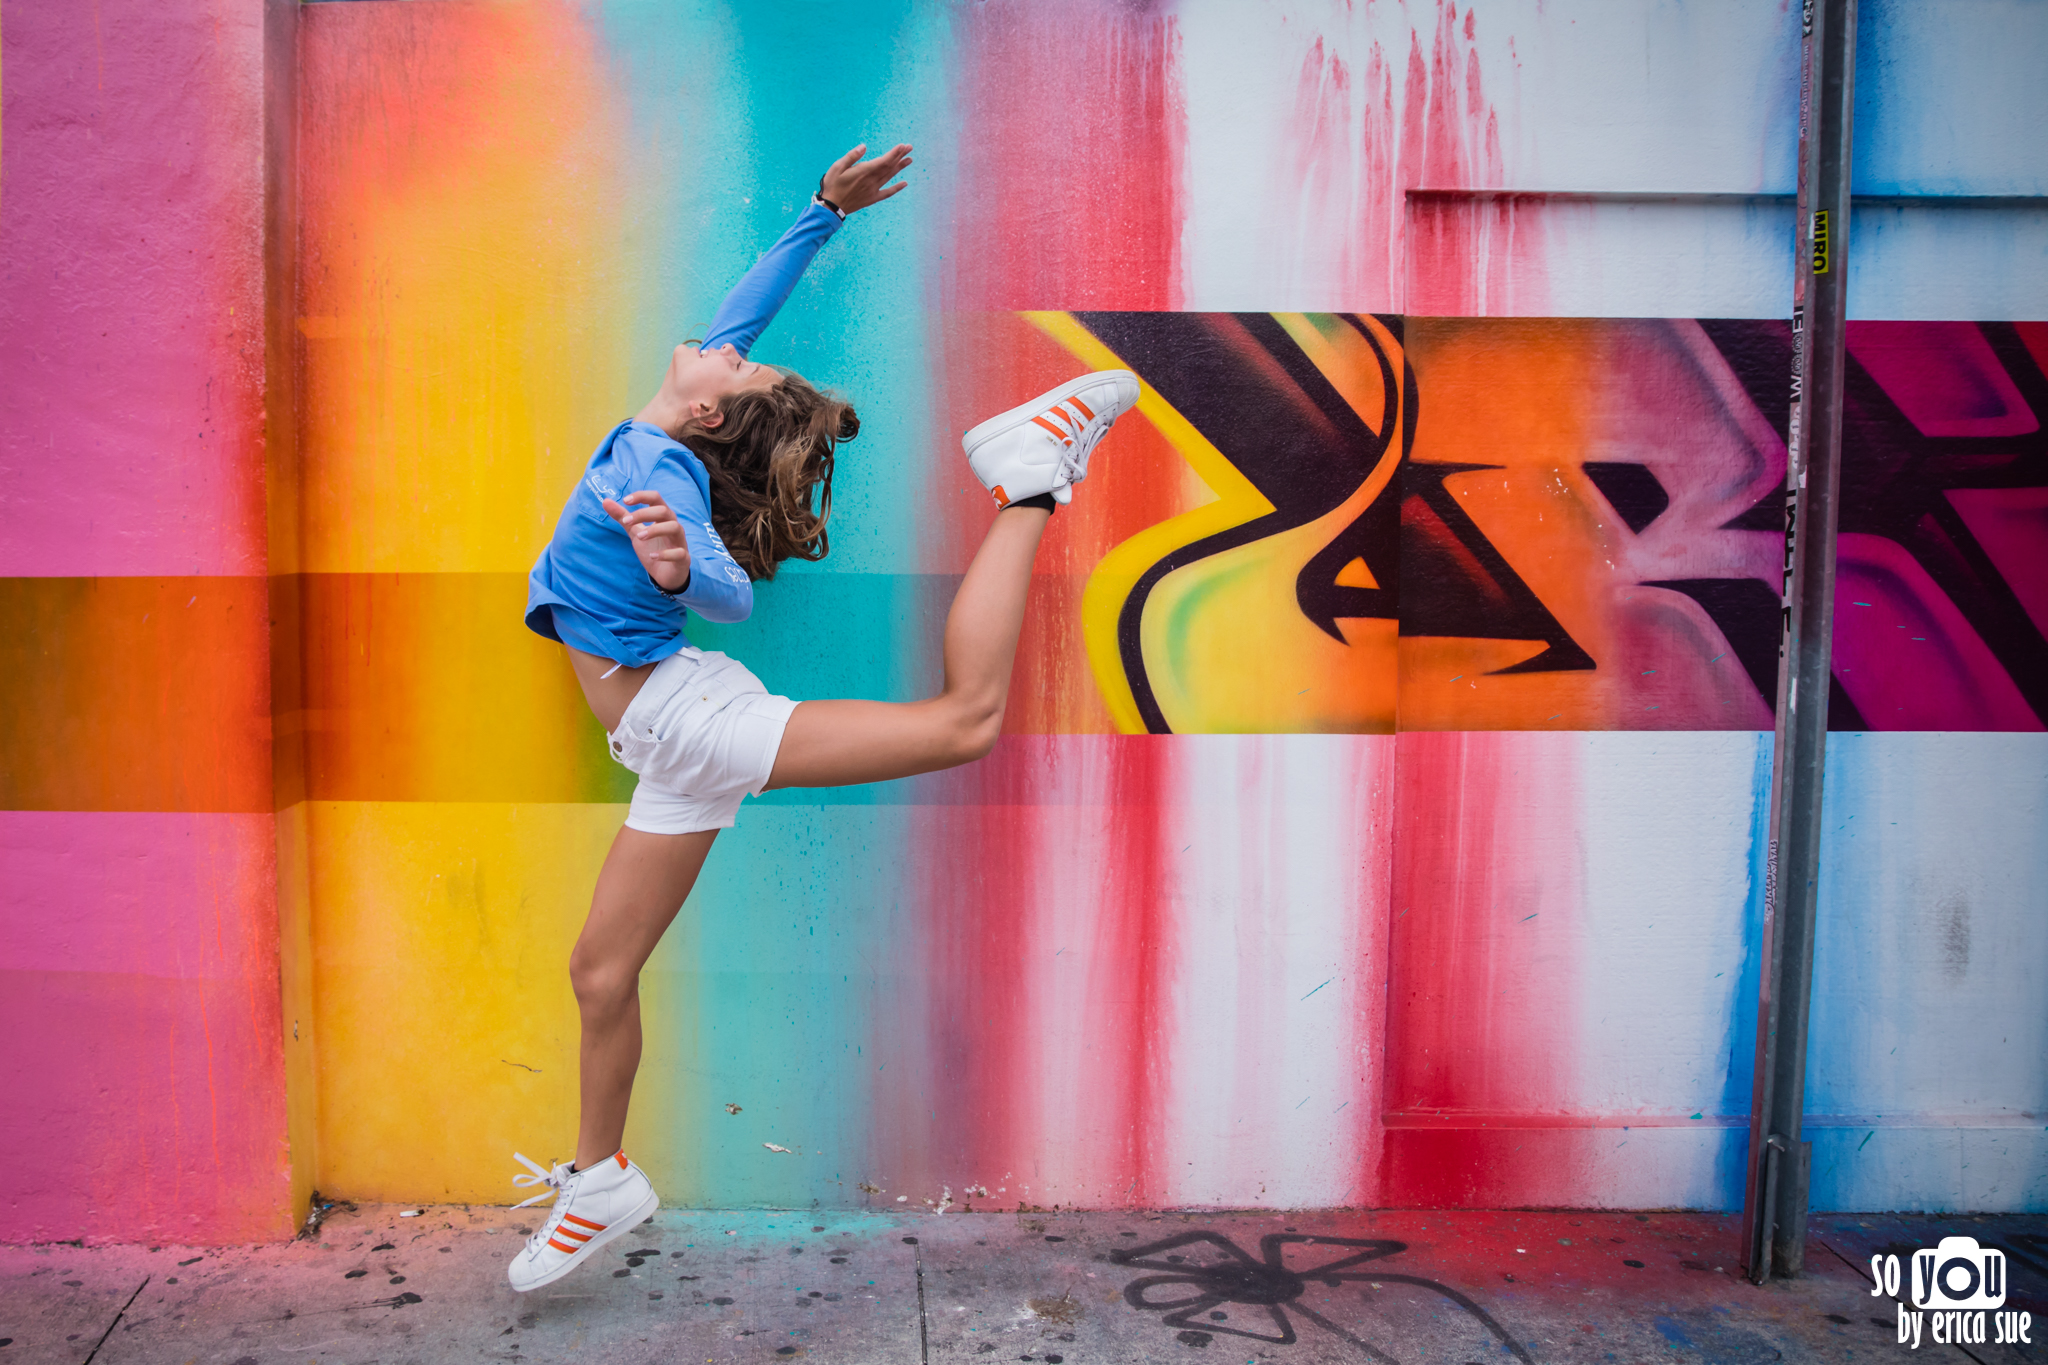 so-you-by-erica-sue-wynwood-walls-miami-photography-mitzvah-pre-shoot-5480.jpg